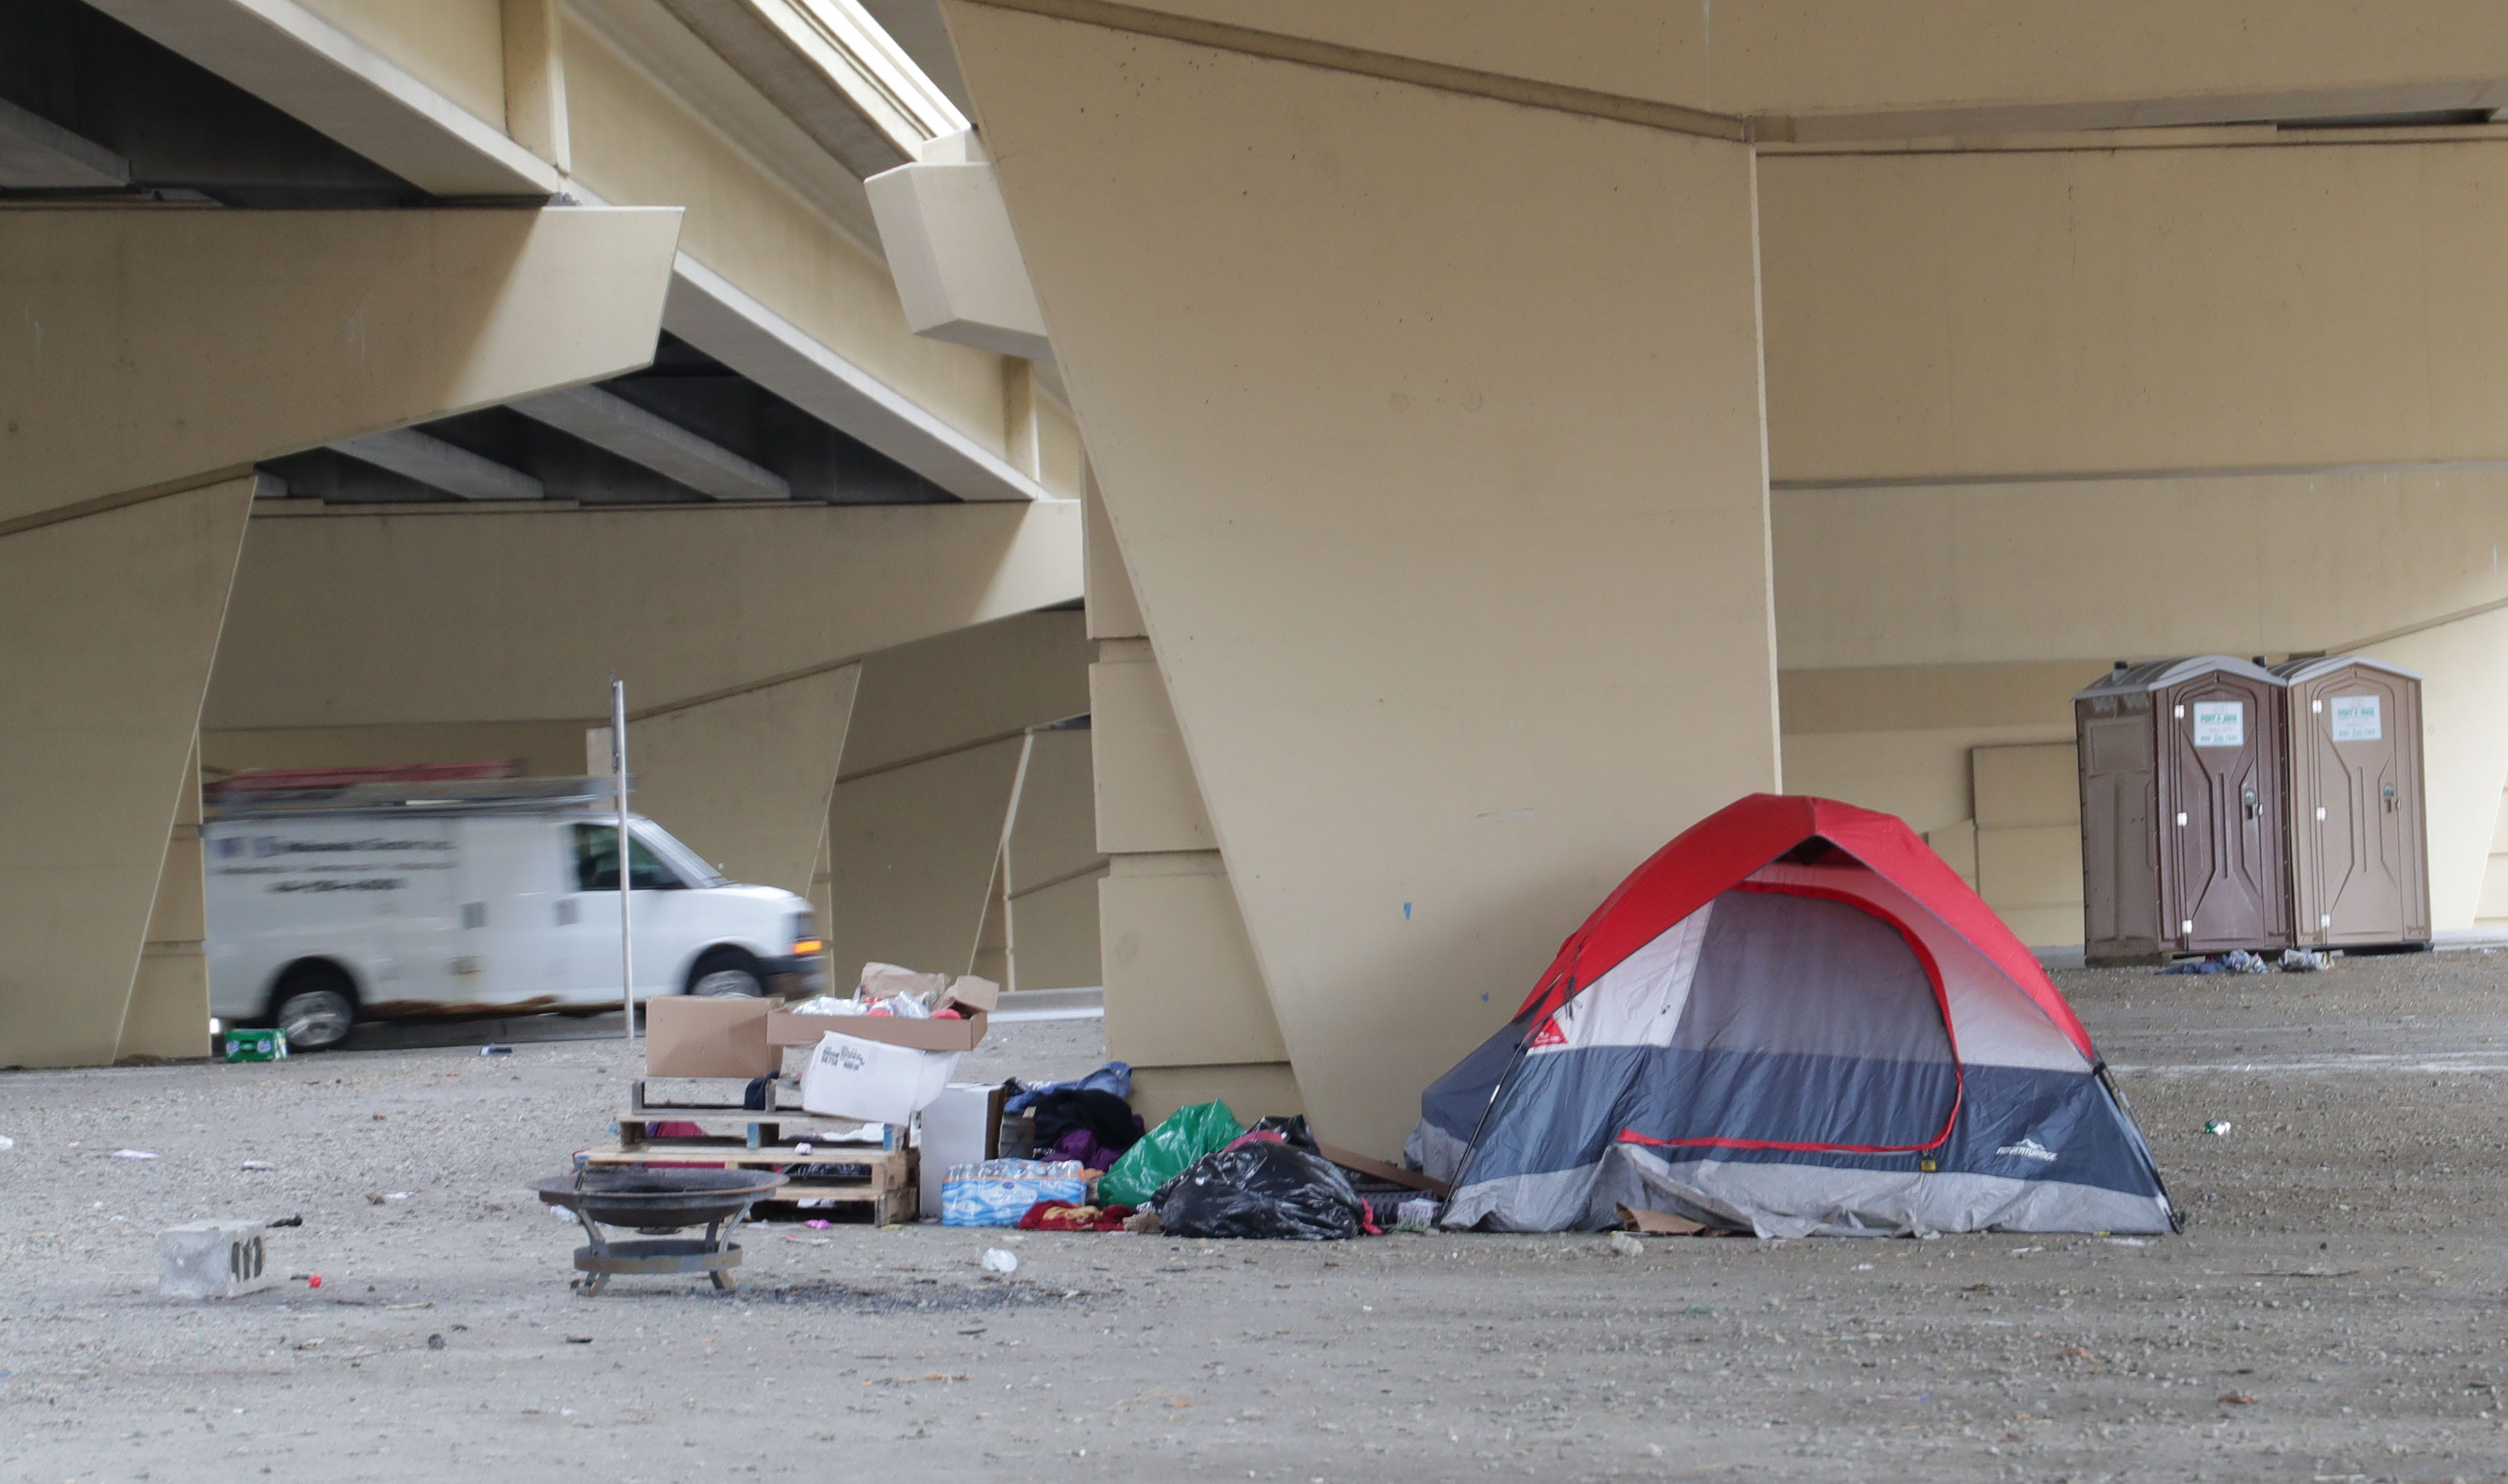 Downtown Milwaukee homeless encampment known as Tent City almost cleared out   Milwaukee Journal Sentinel